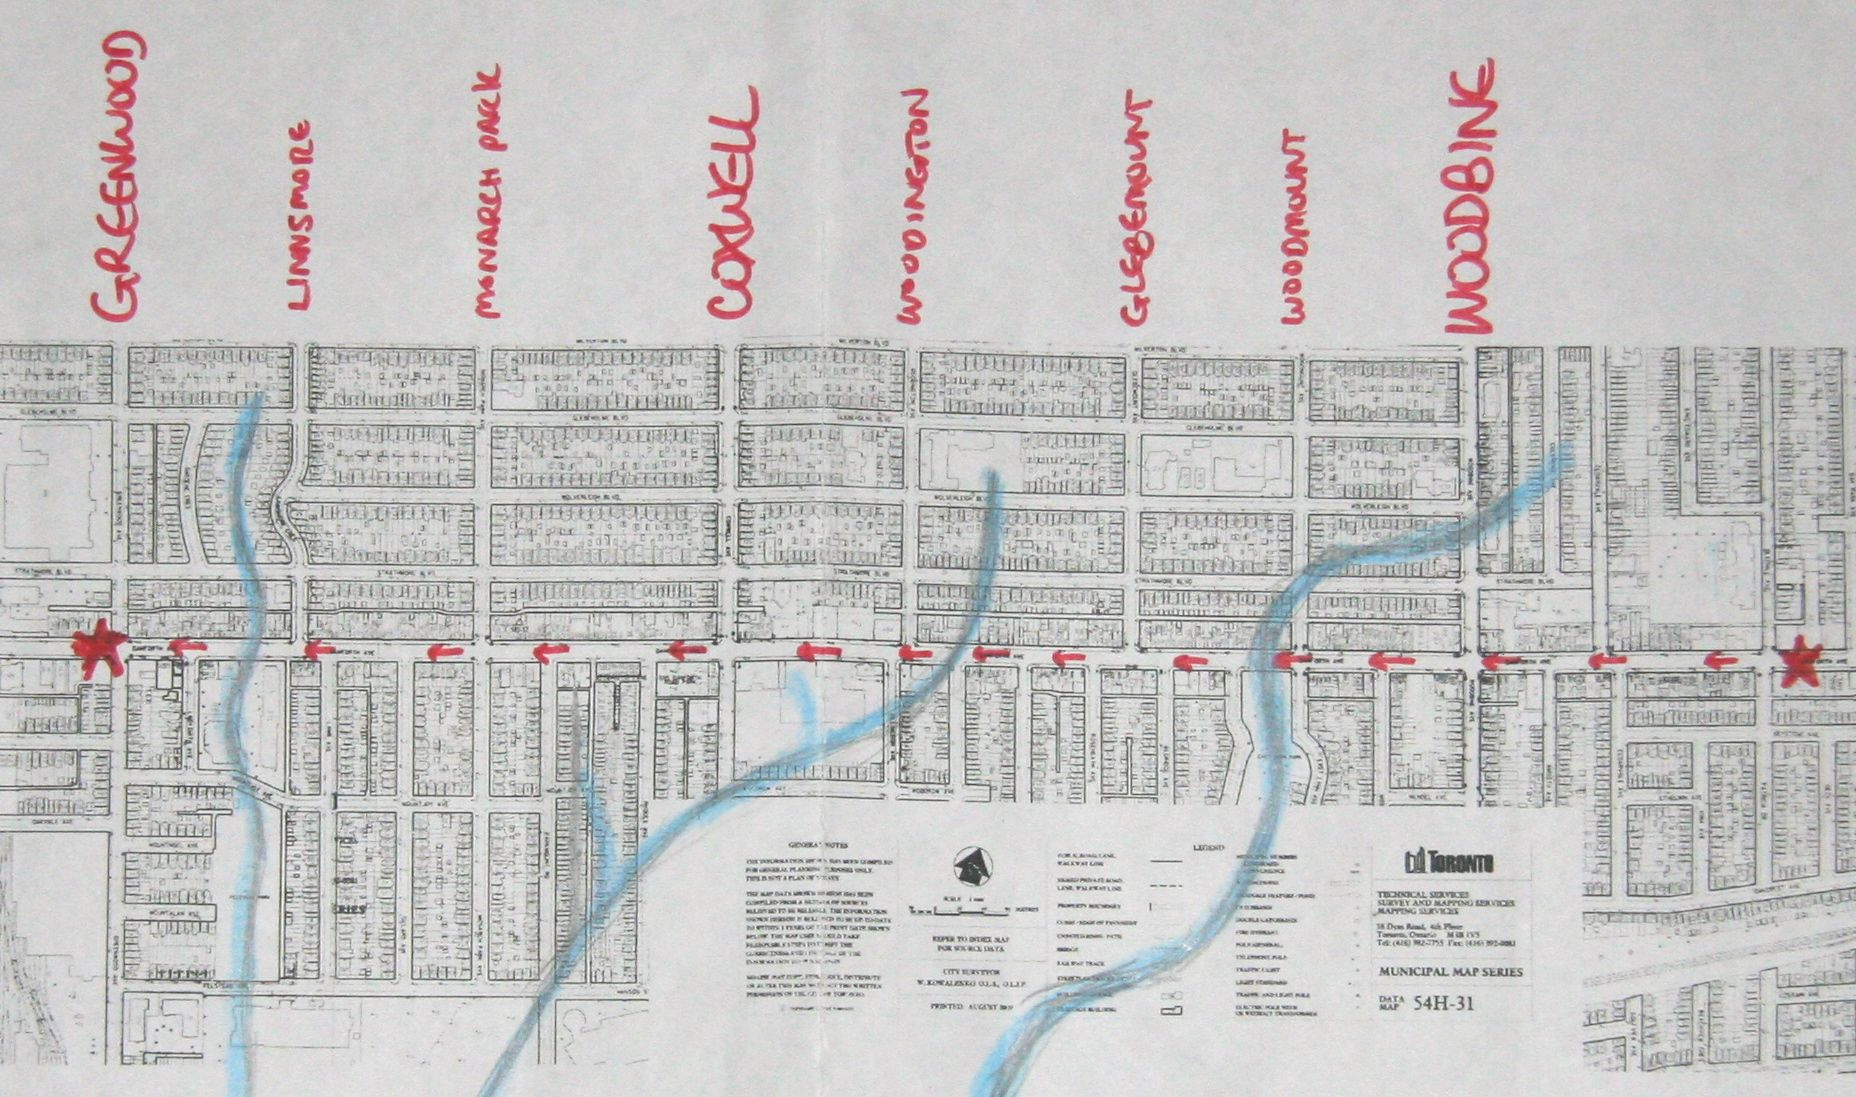 A map of our walk, which will cross three of the five creeks that once made it difficult to keep the Don and Danforth Plank Road passable east of Pape. The creeks and the less-than-convenient access to the city in the pre-viaduct era, were big contributors to the fact this area of Midway, (Upper Midway as many called the turf north of the railway tracks), remained rural into the early 1920s.